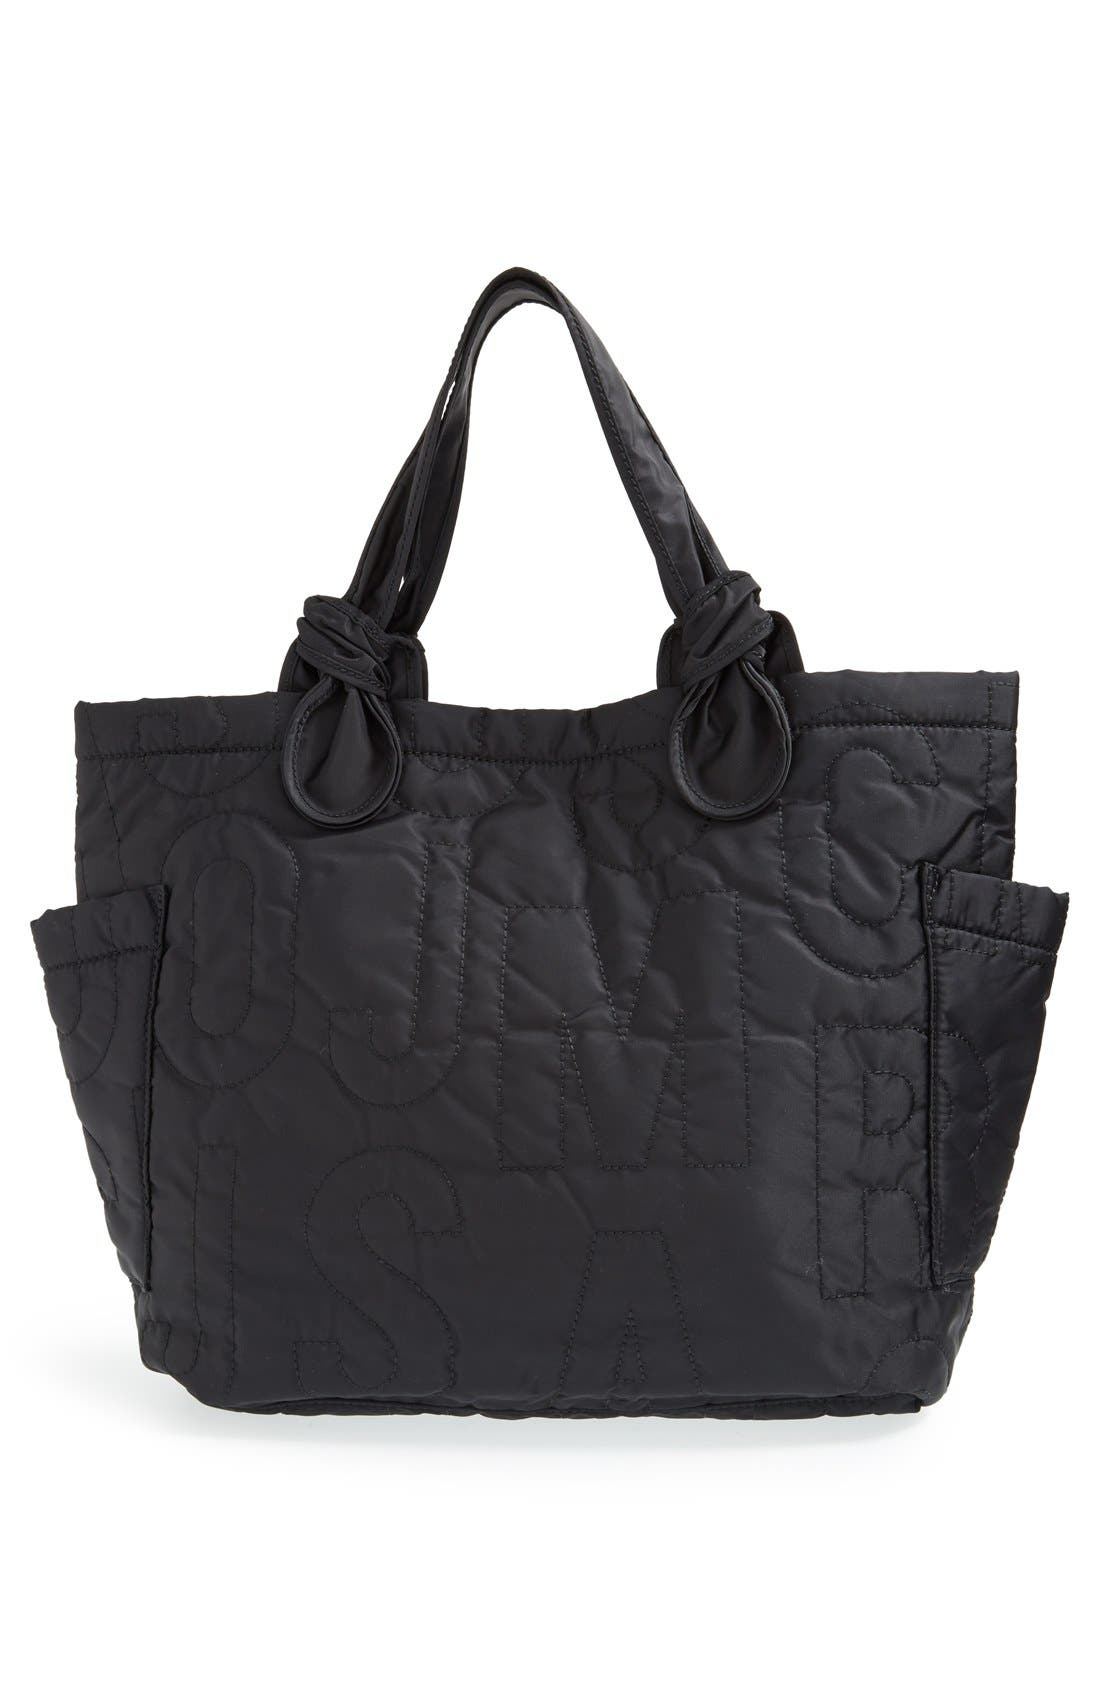 MARC JACOBS,                             MARC BY MARC JACOBS 'Medium Pretty Nylon Tate' Tote,                             Alternate thumbnail 5, color,                             001